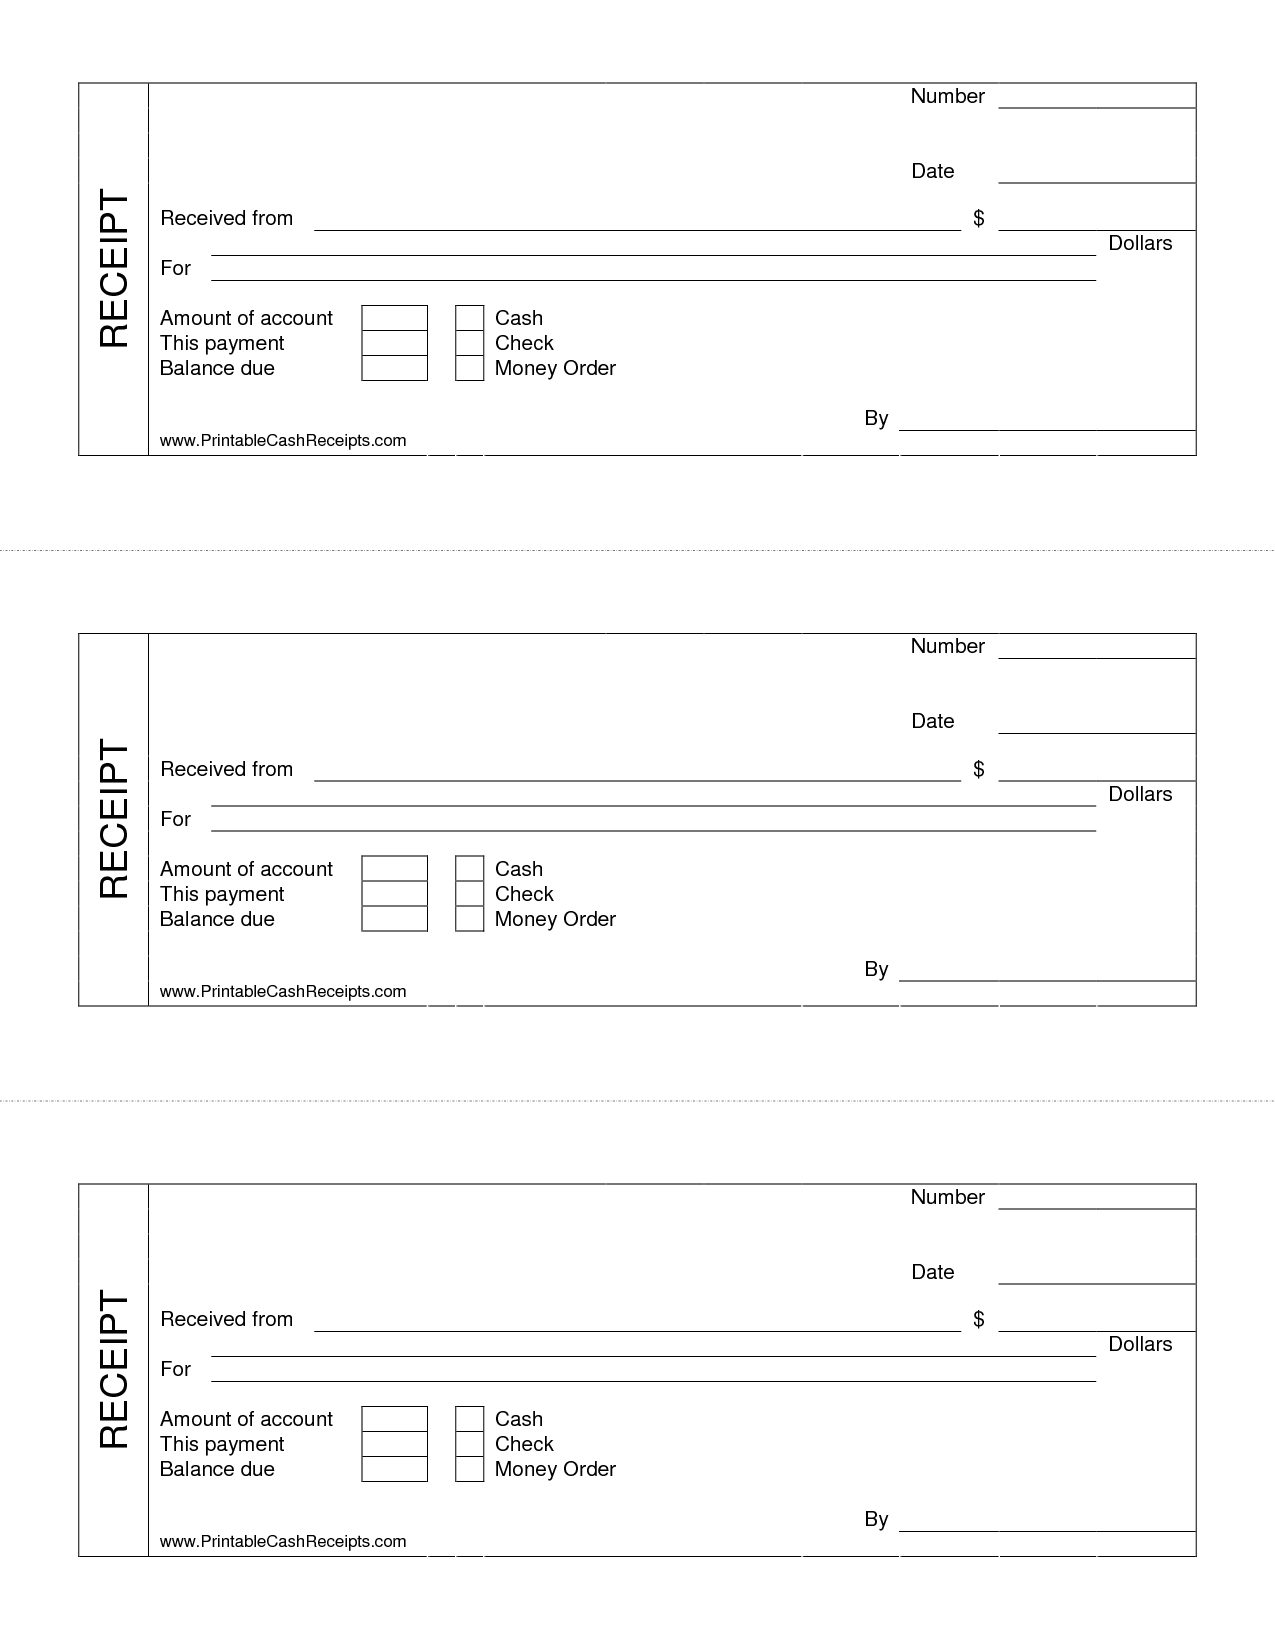 9 Images of Printable Cash Receipt Template